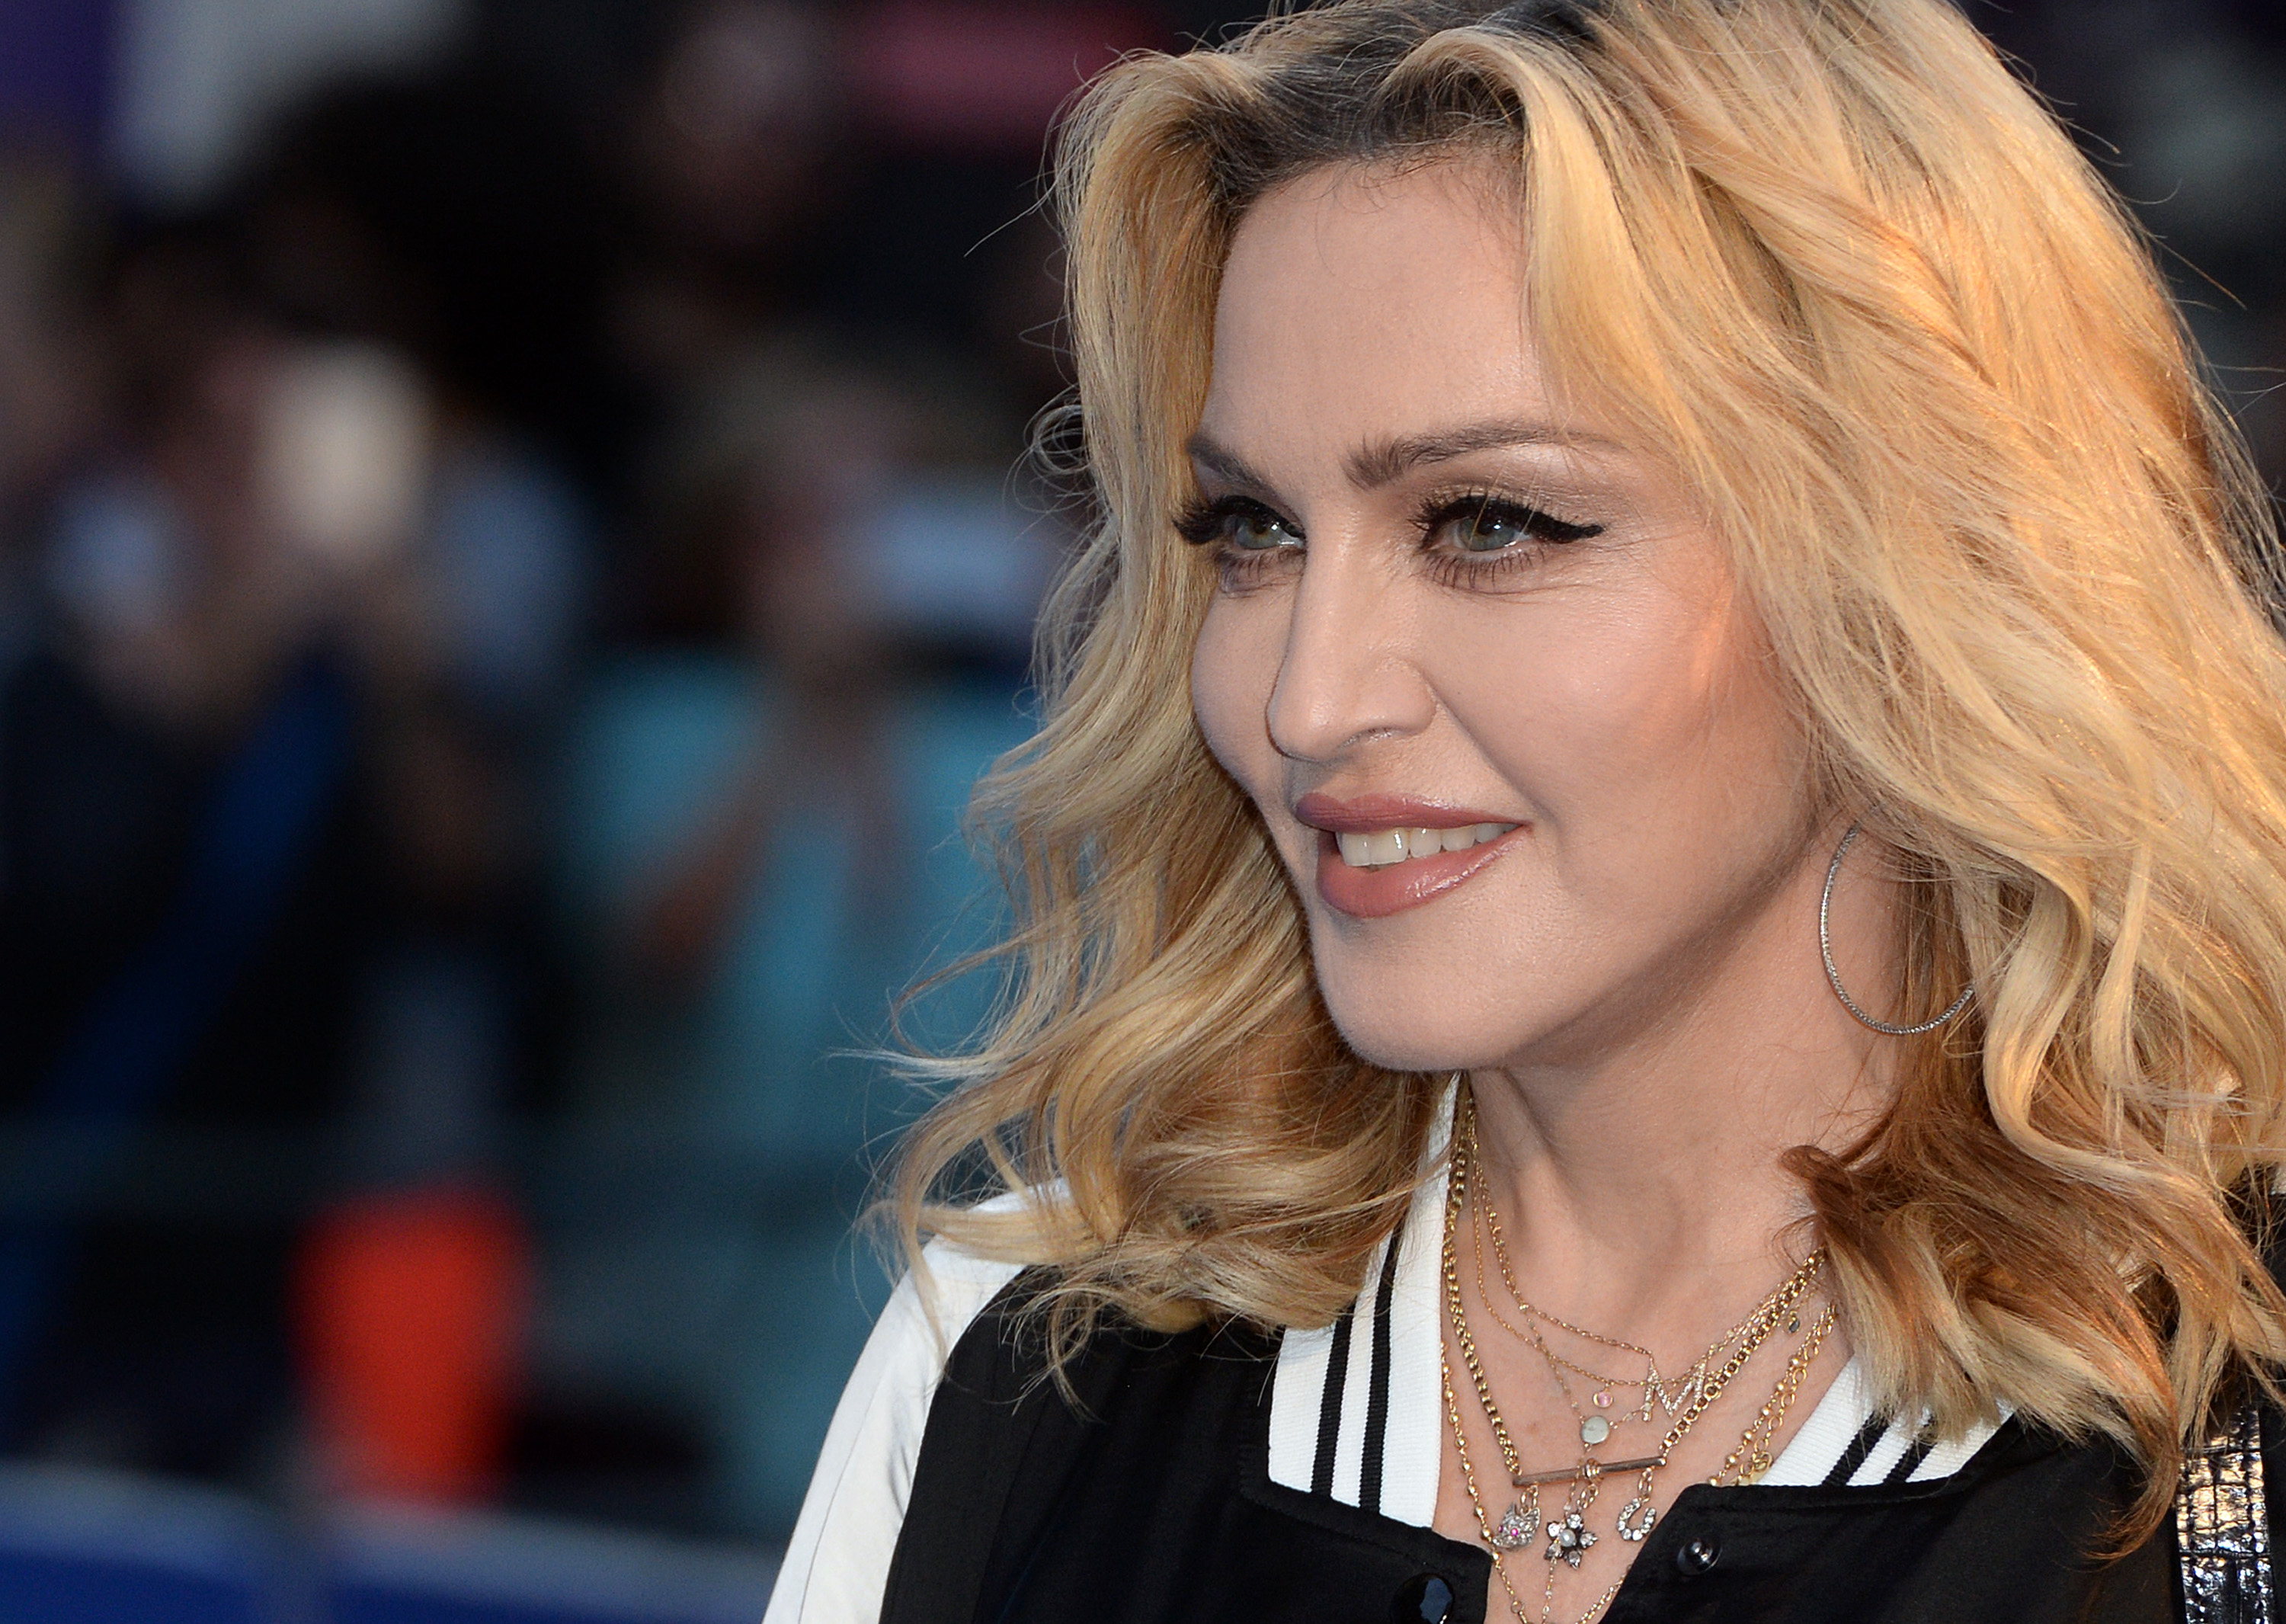 Madonna is doing a concert for Hillary Clinton